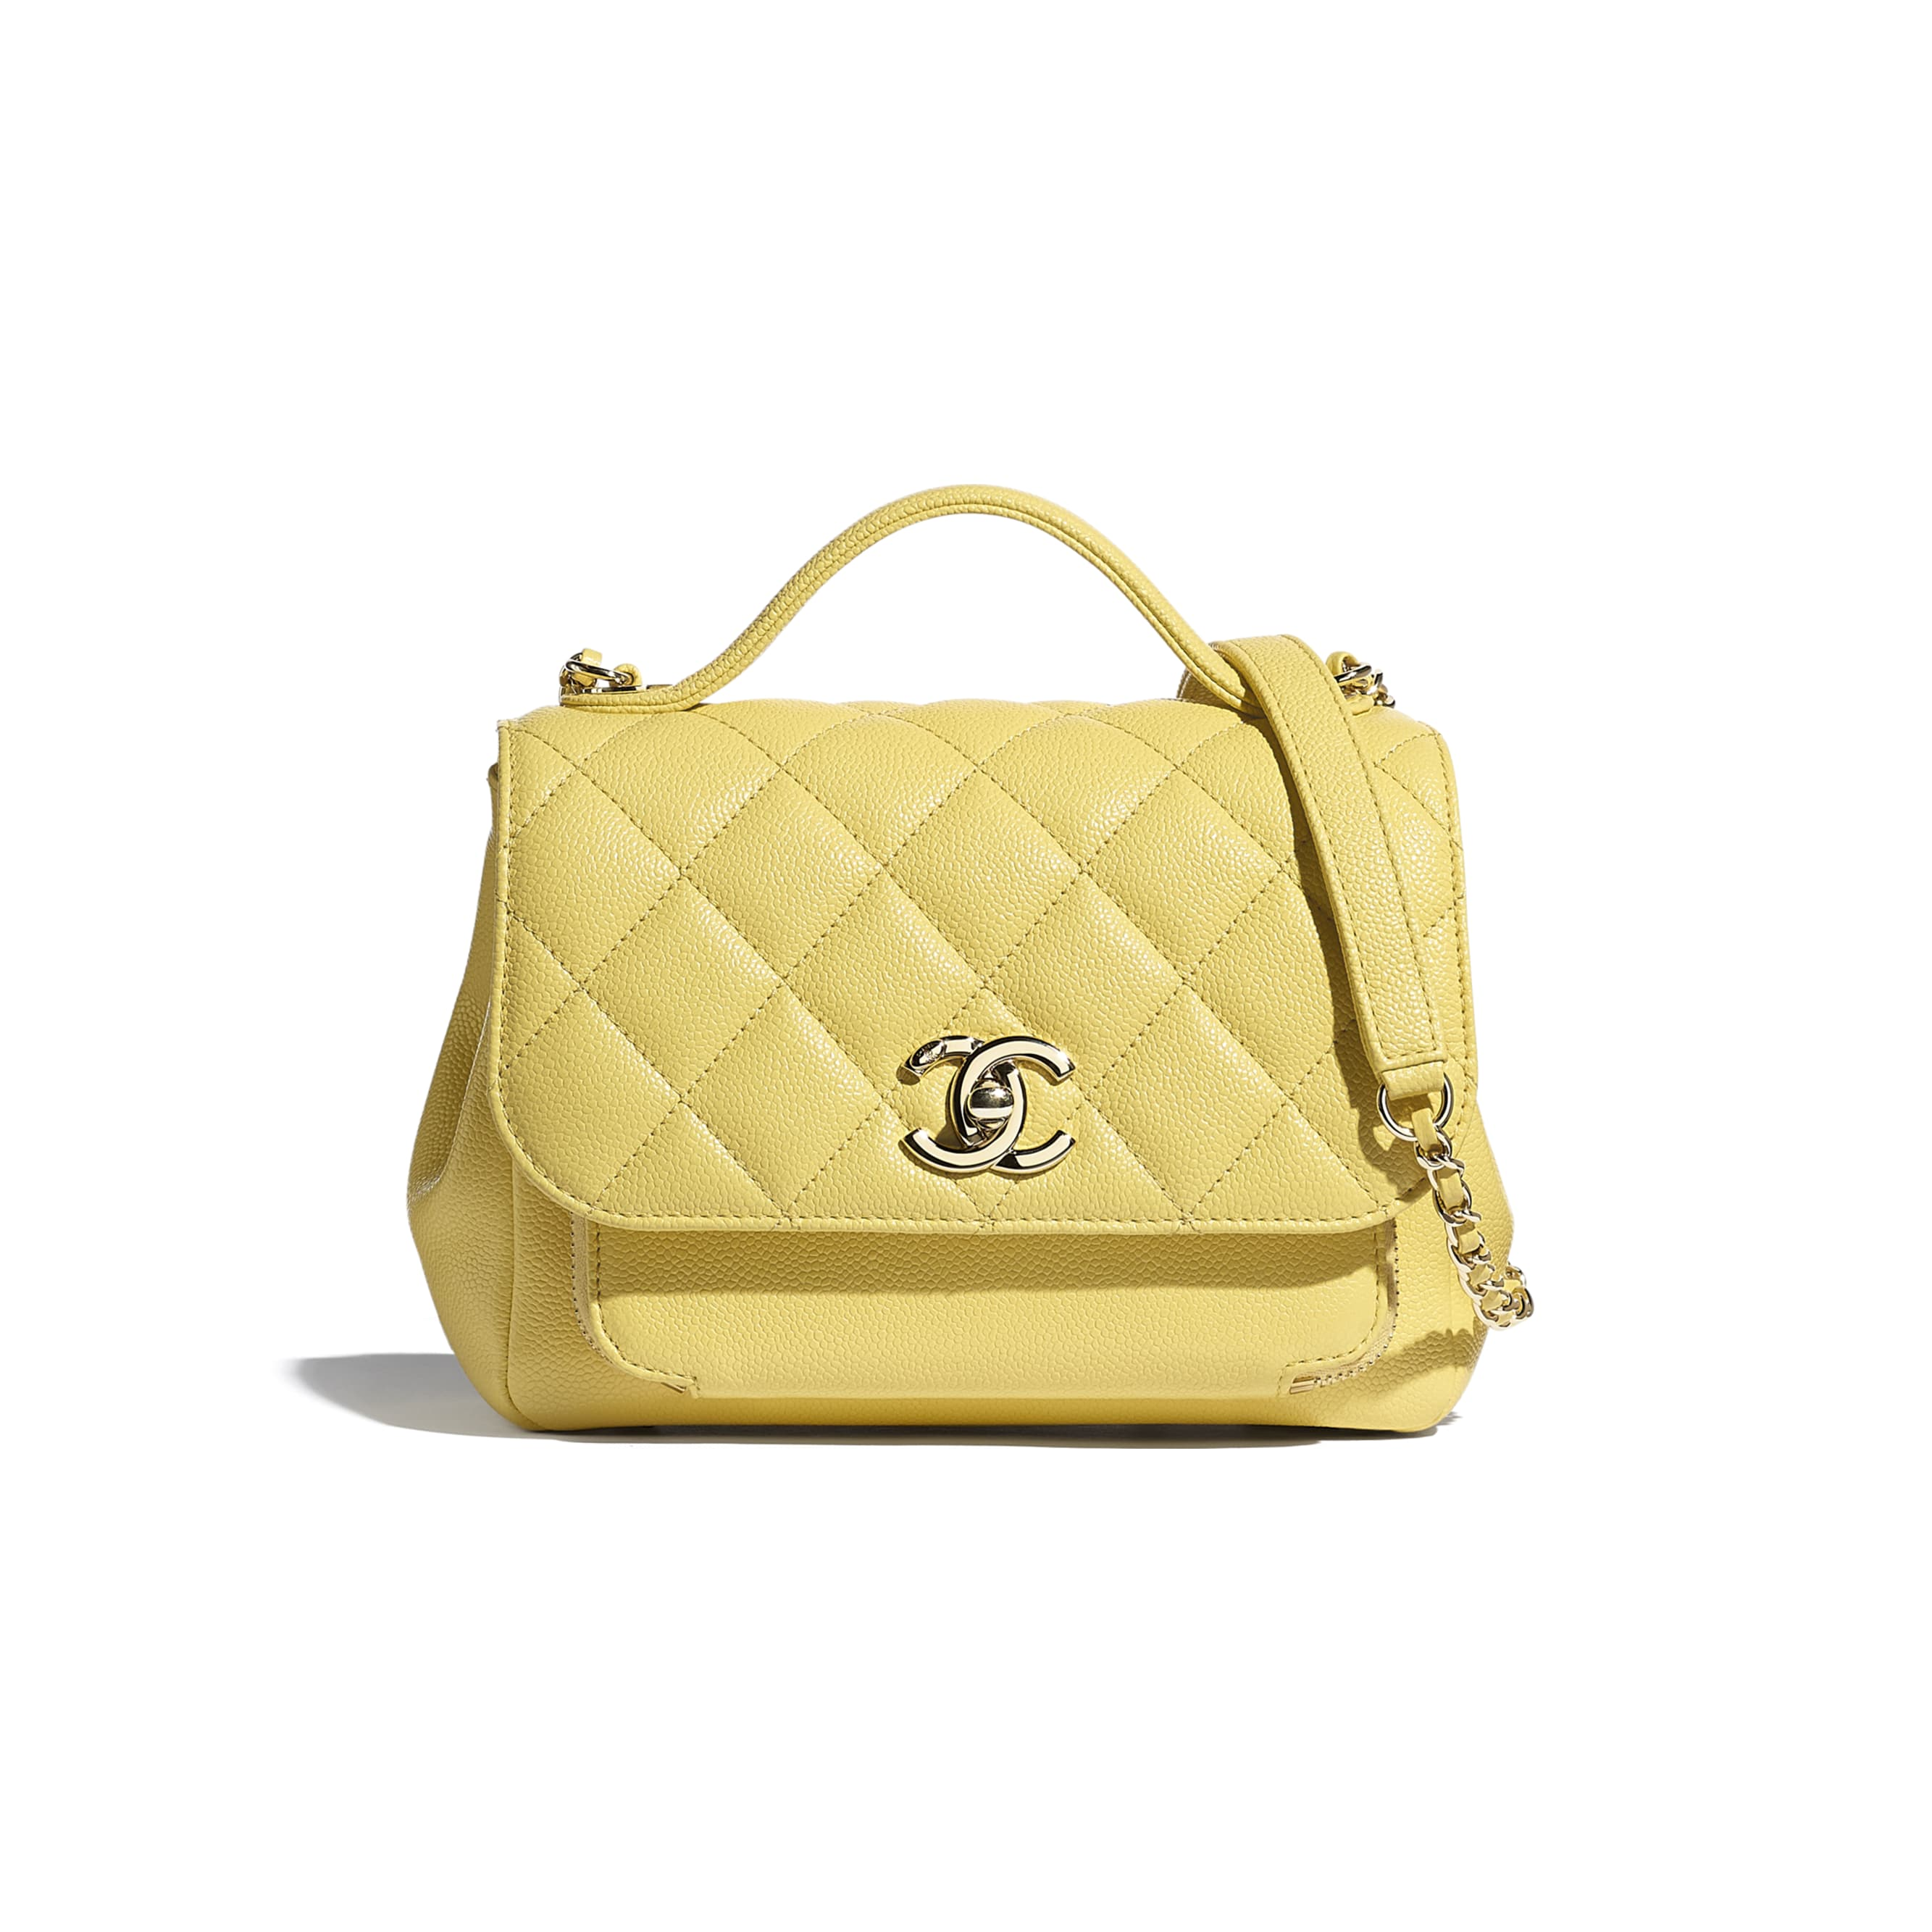 Small Flap Bag With Top Handle - Yellow - Grained Calfskin & Gold-Tone Metal - CHANEL - Default view - see standard sized version